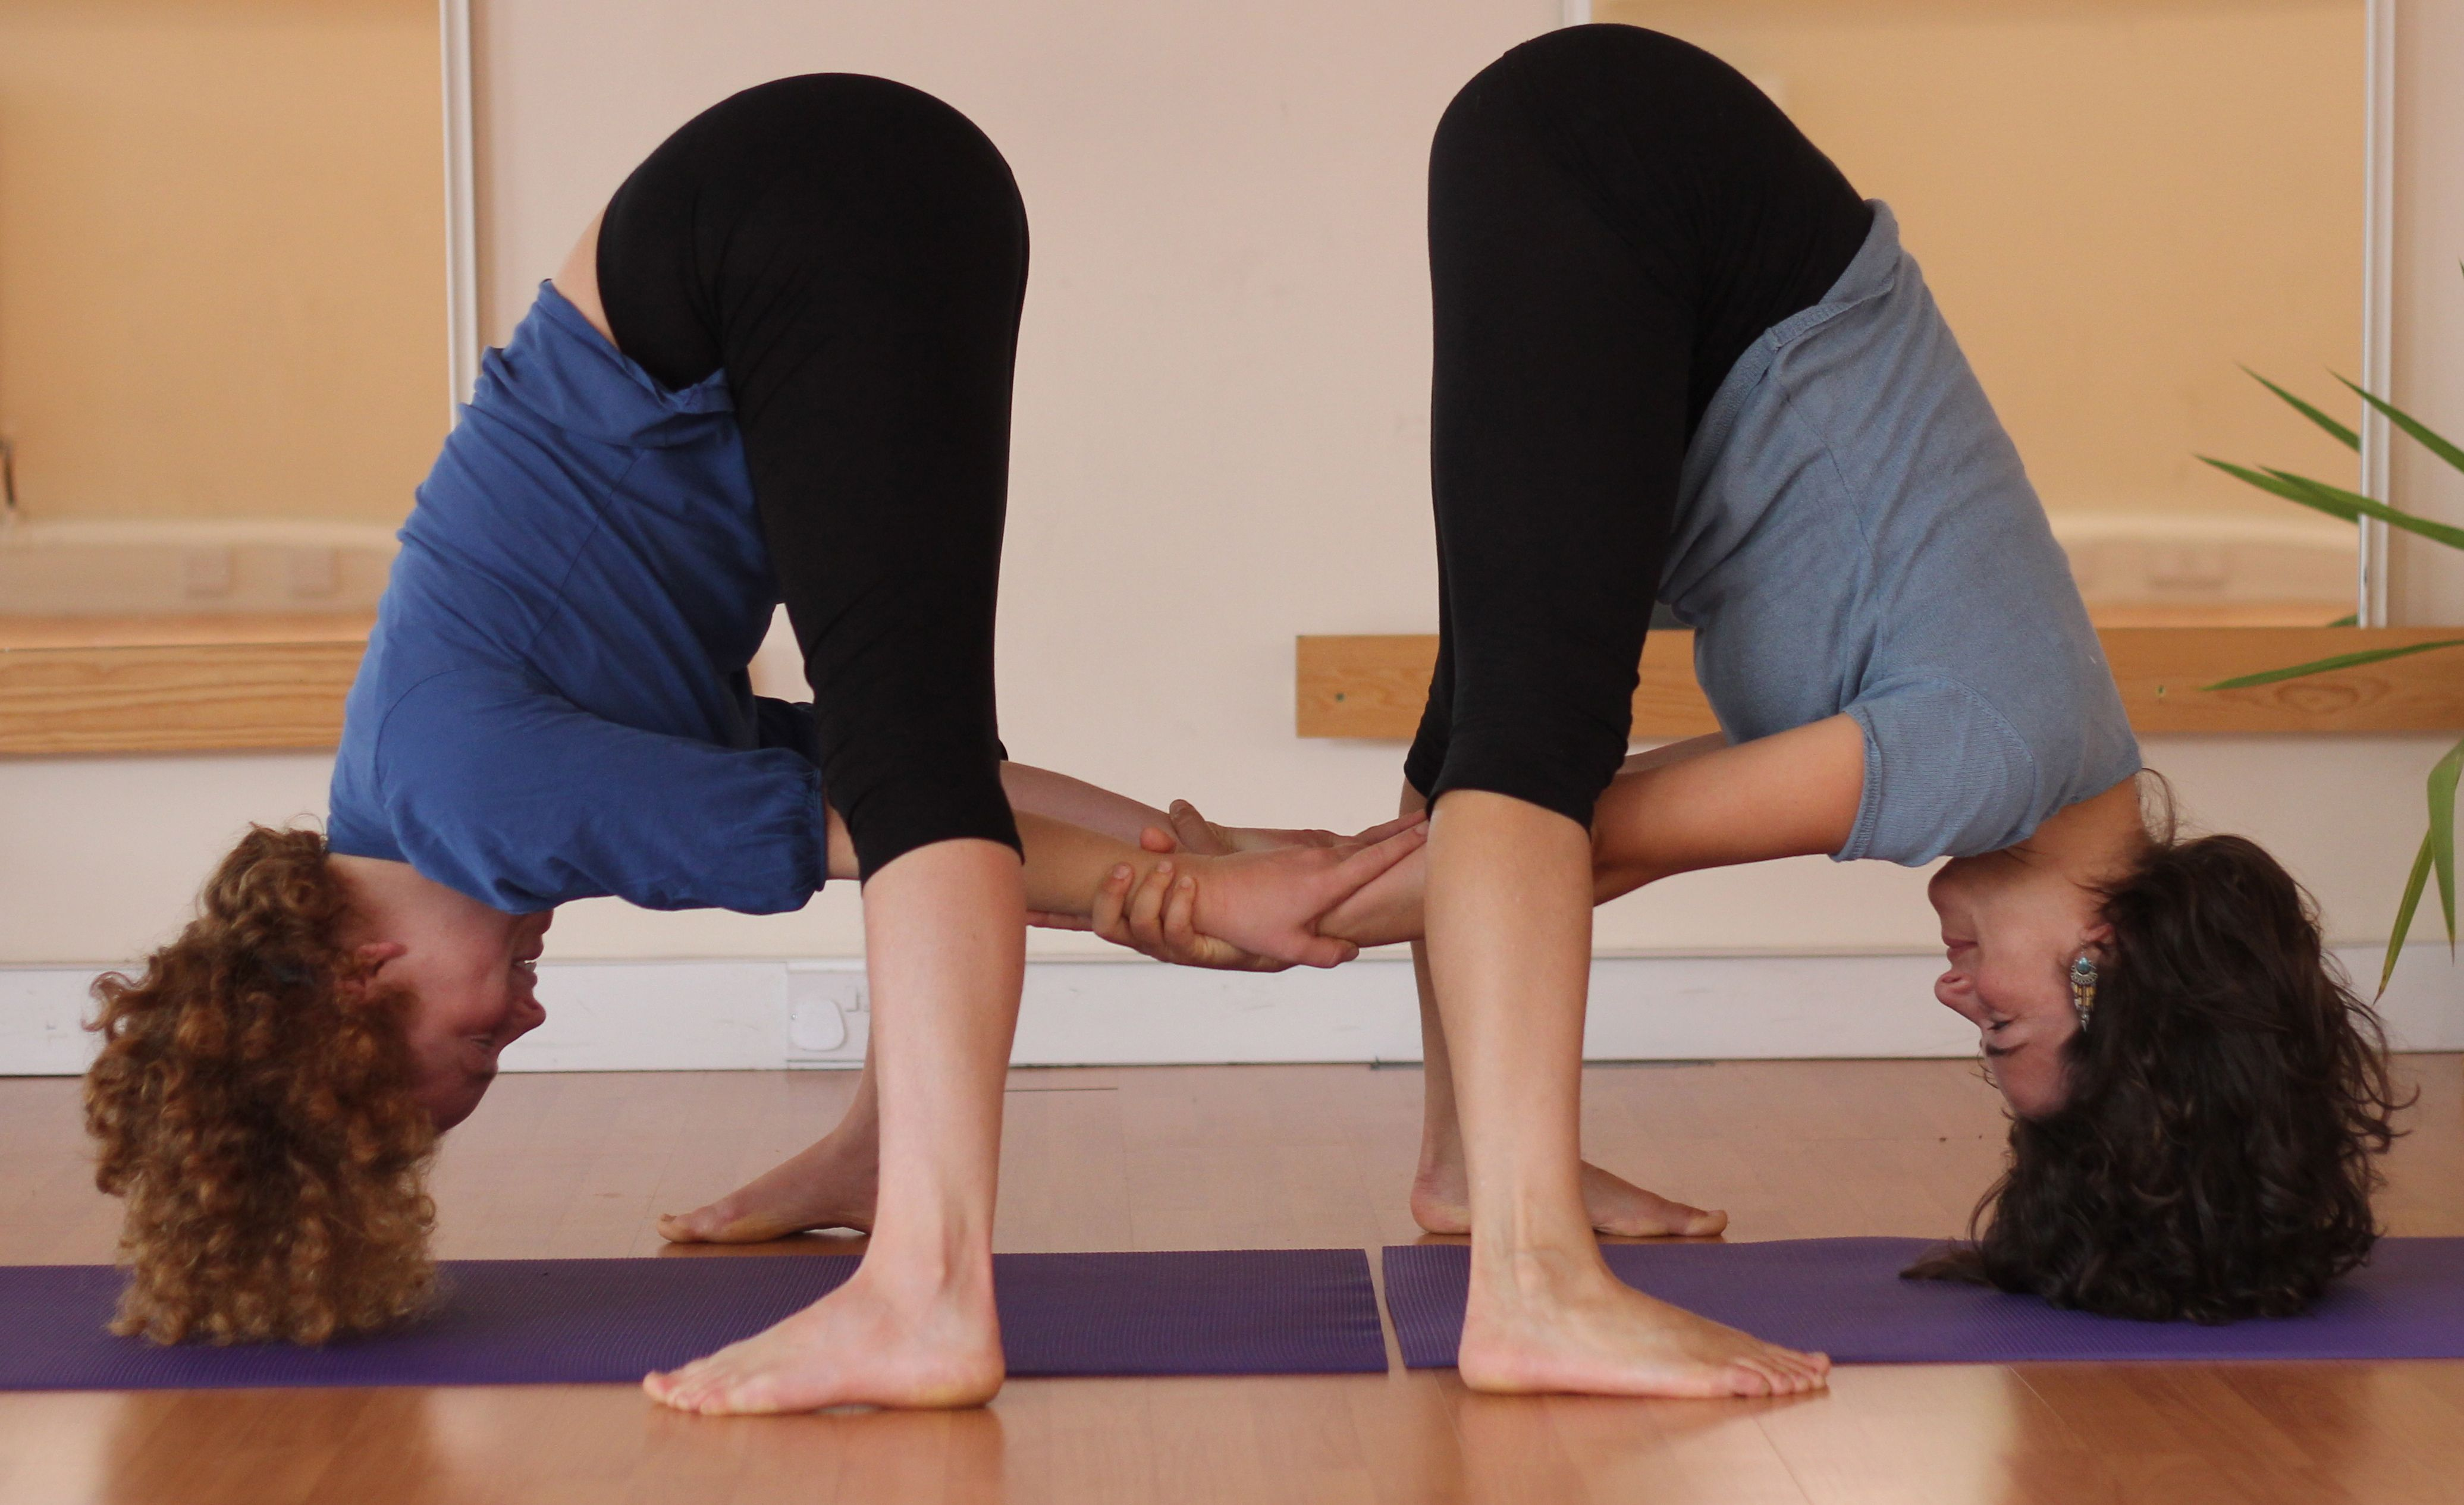 Partner Yoga  Partner yoga, Partner yoga poses, Yoga poses for two